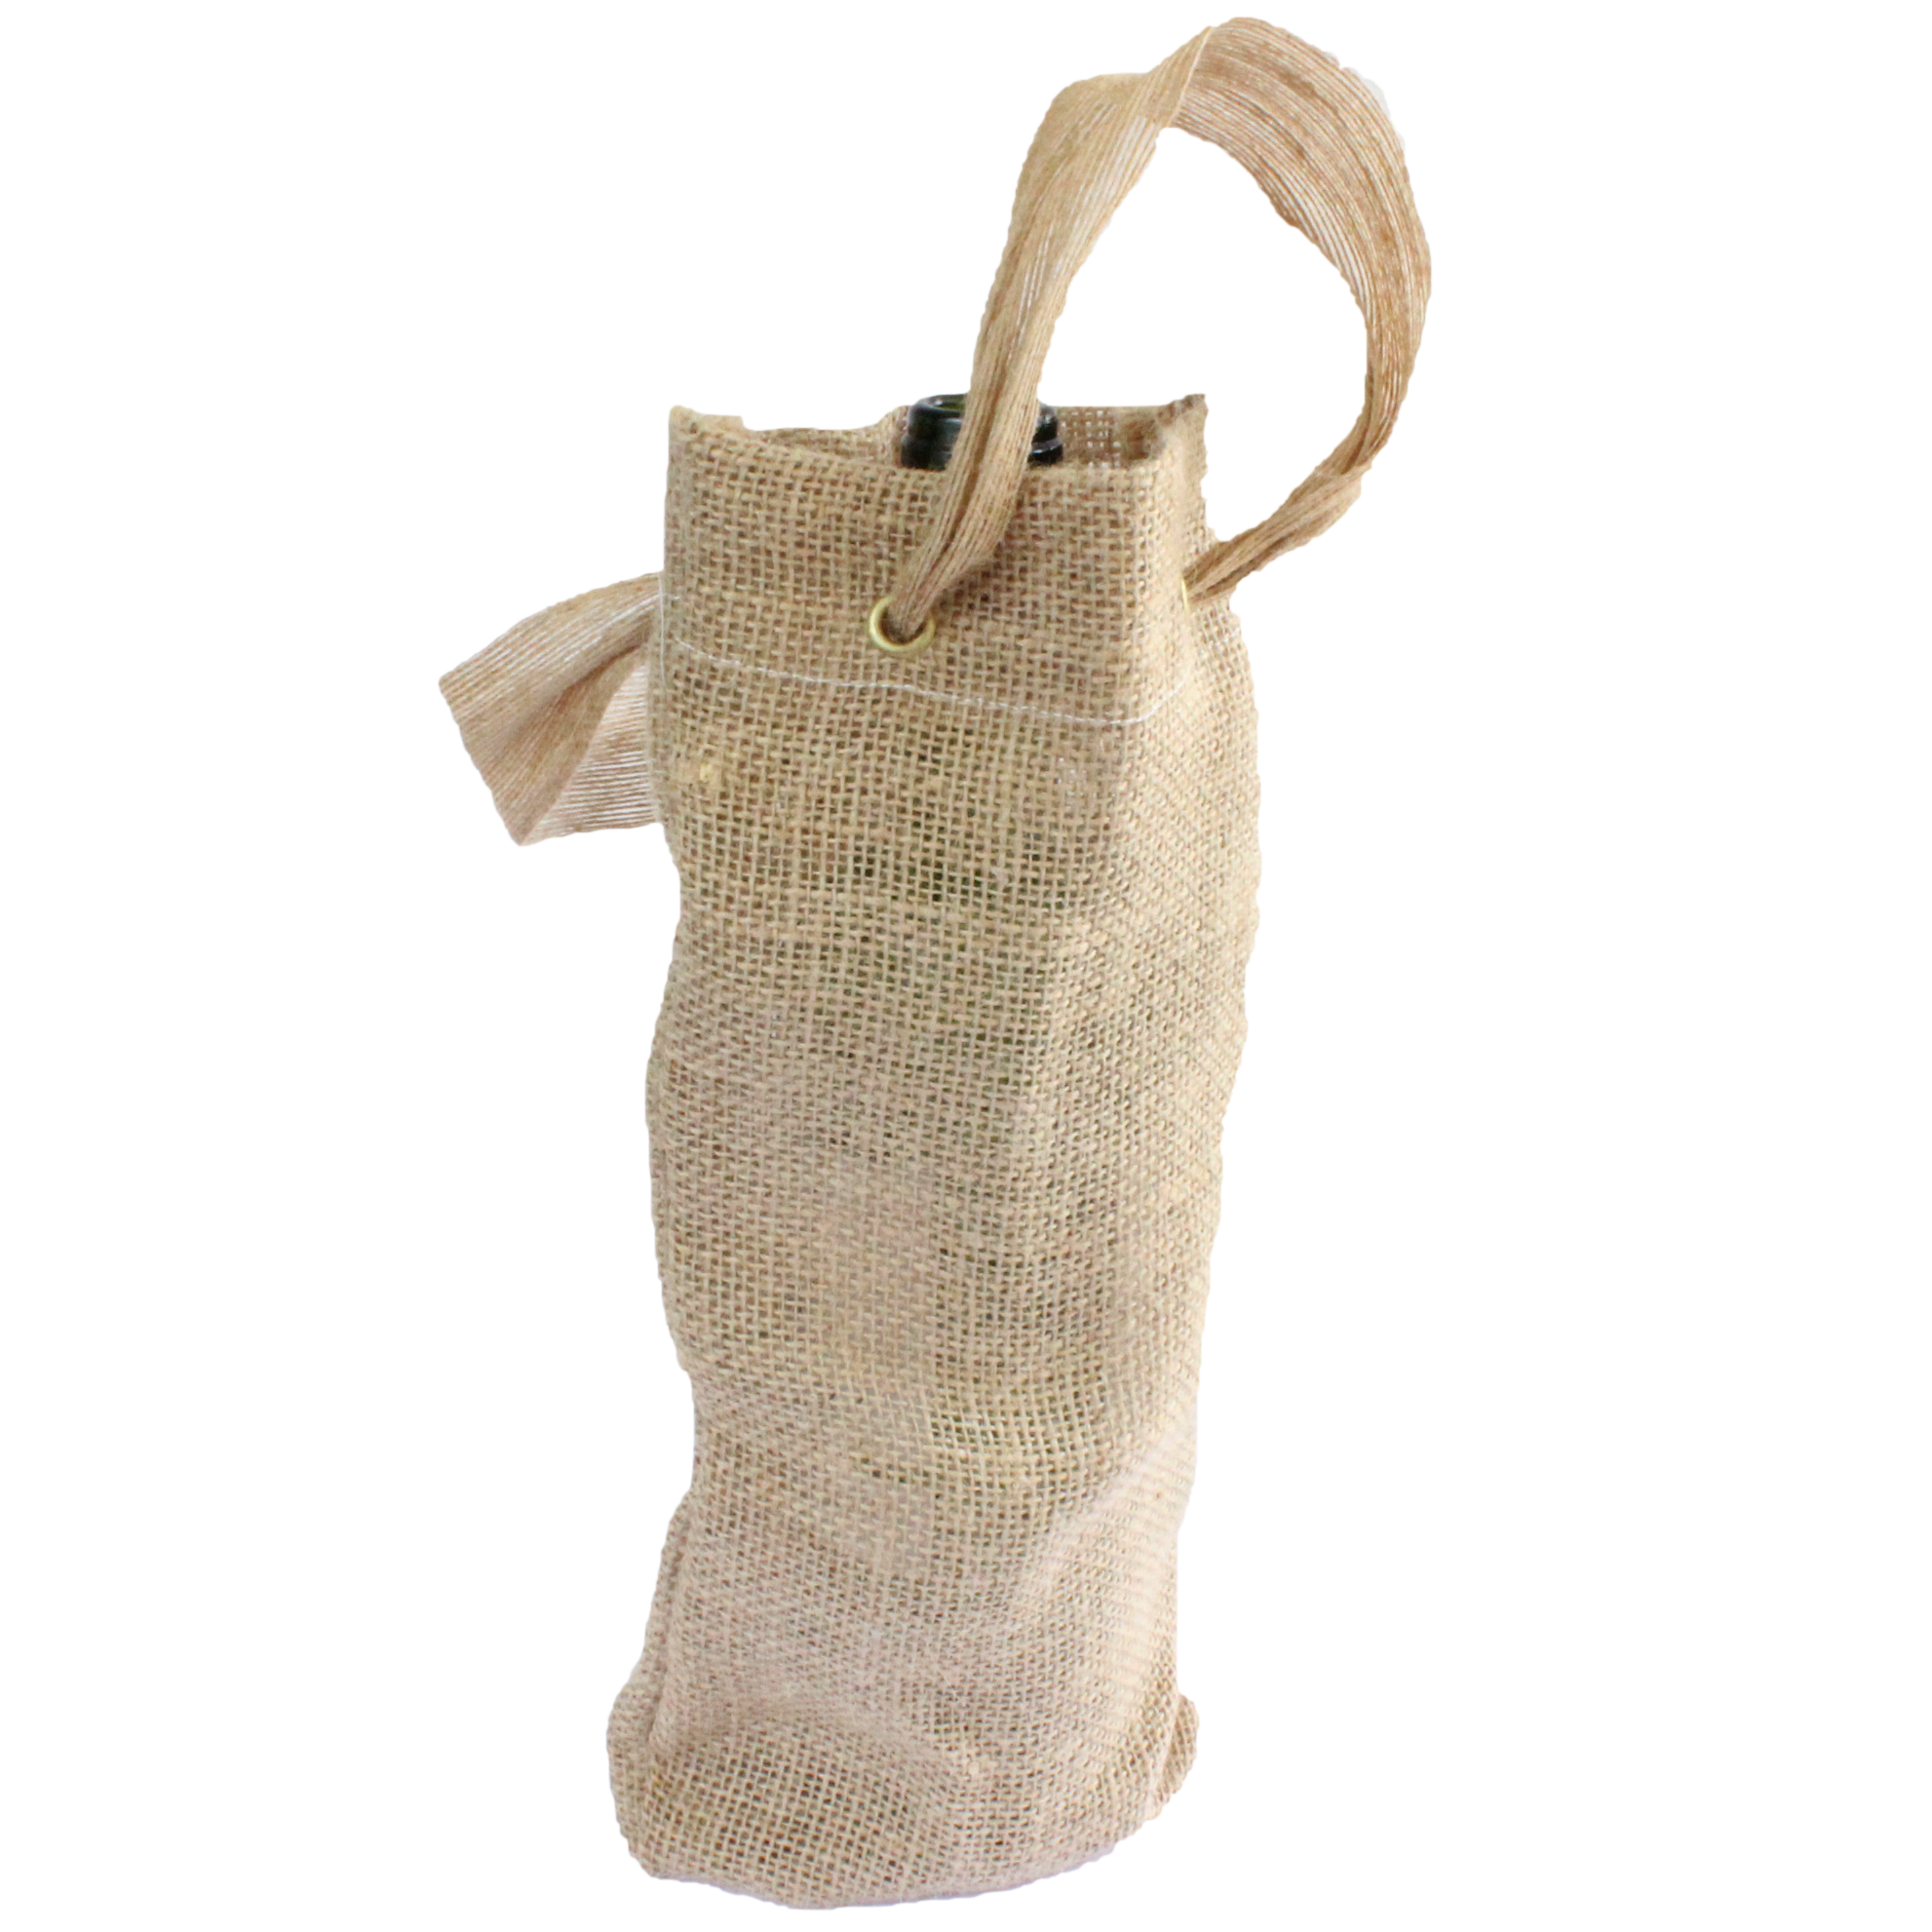 Wine bag, jute, gift, wine carrier